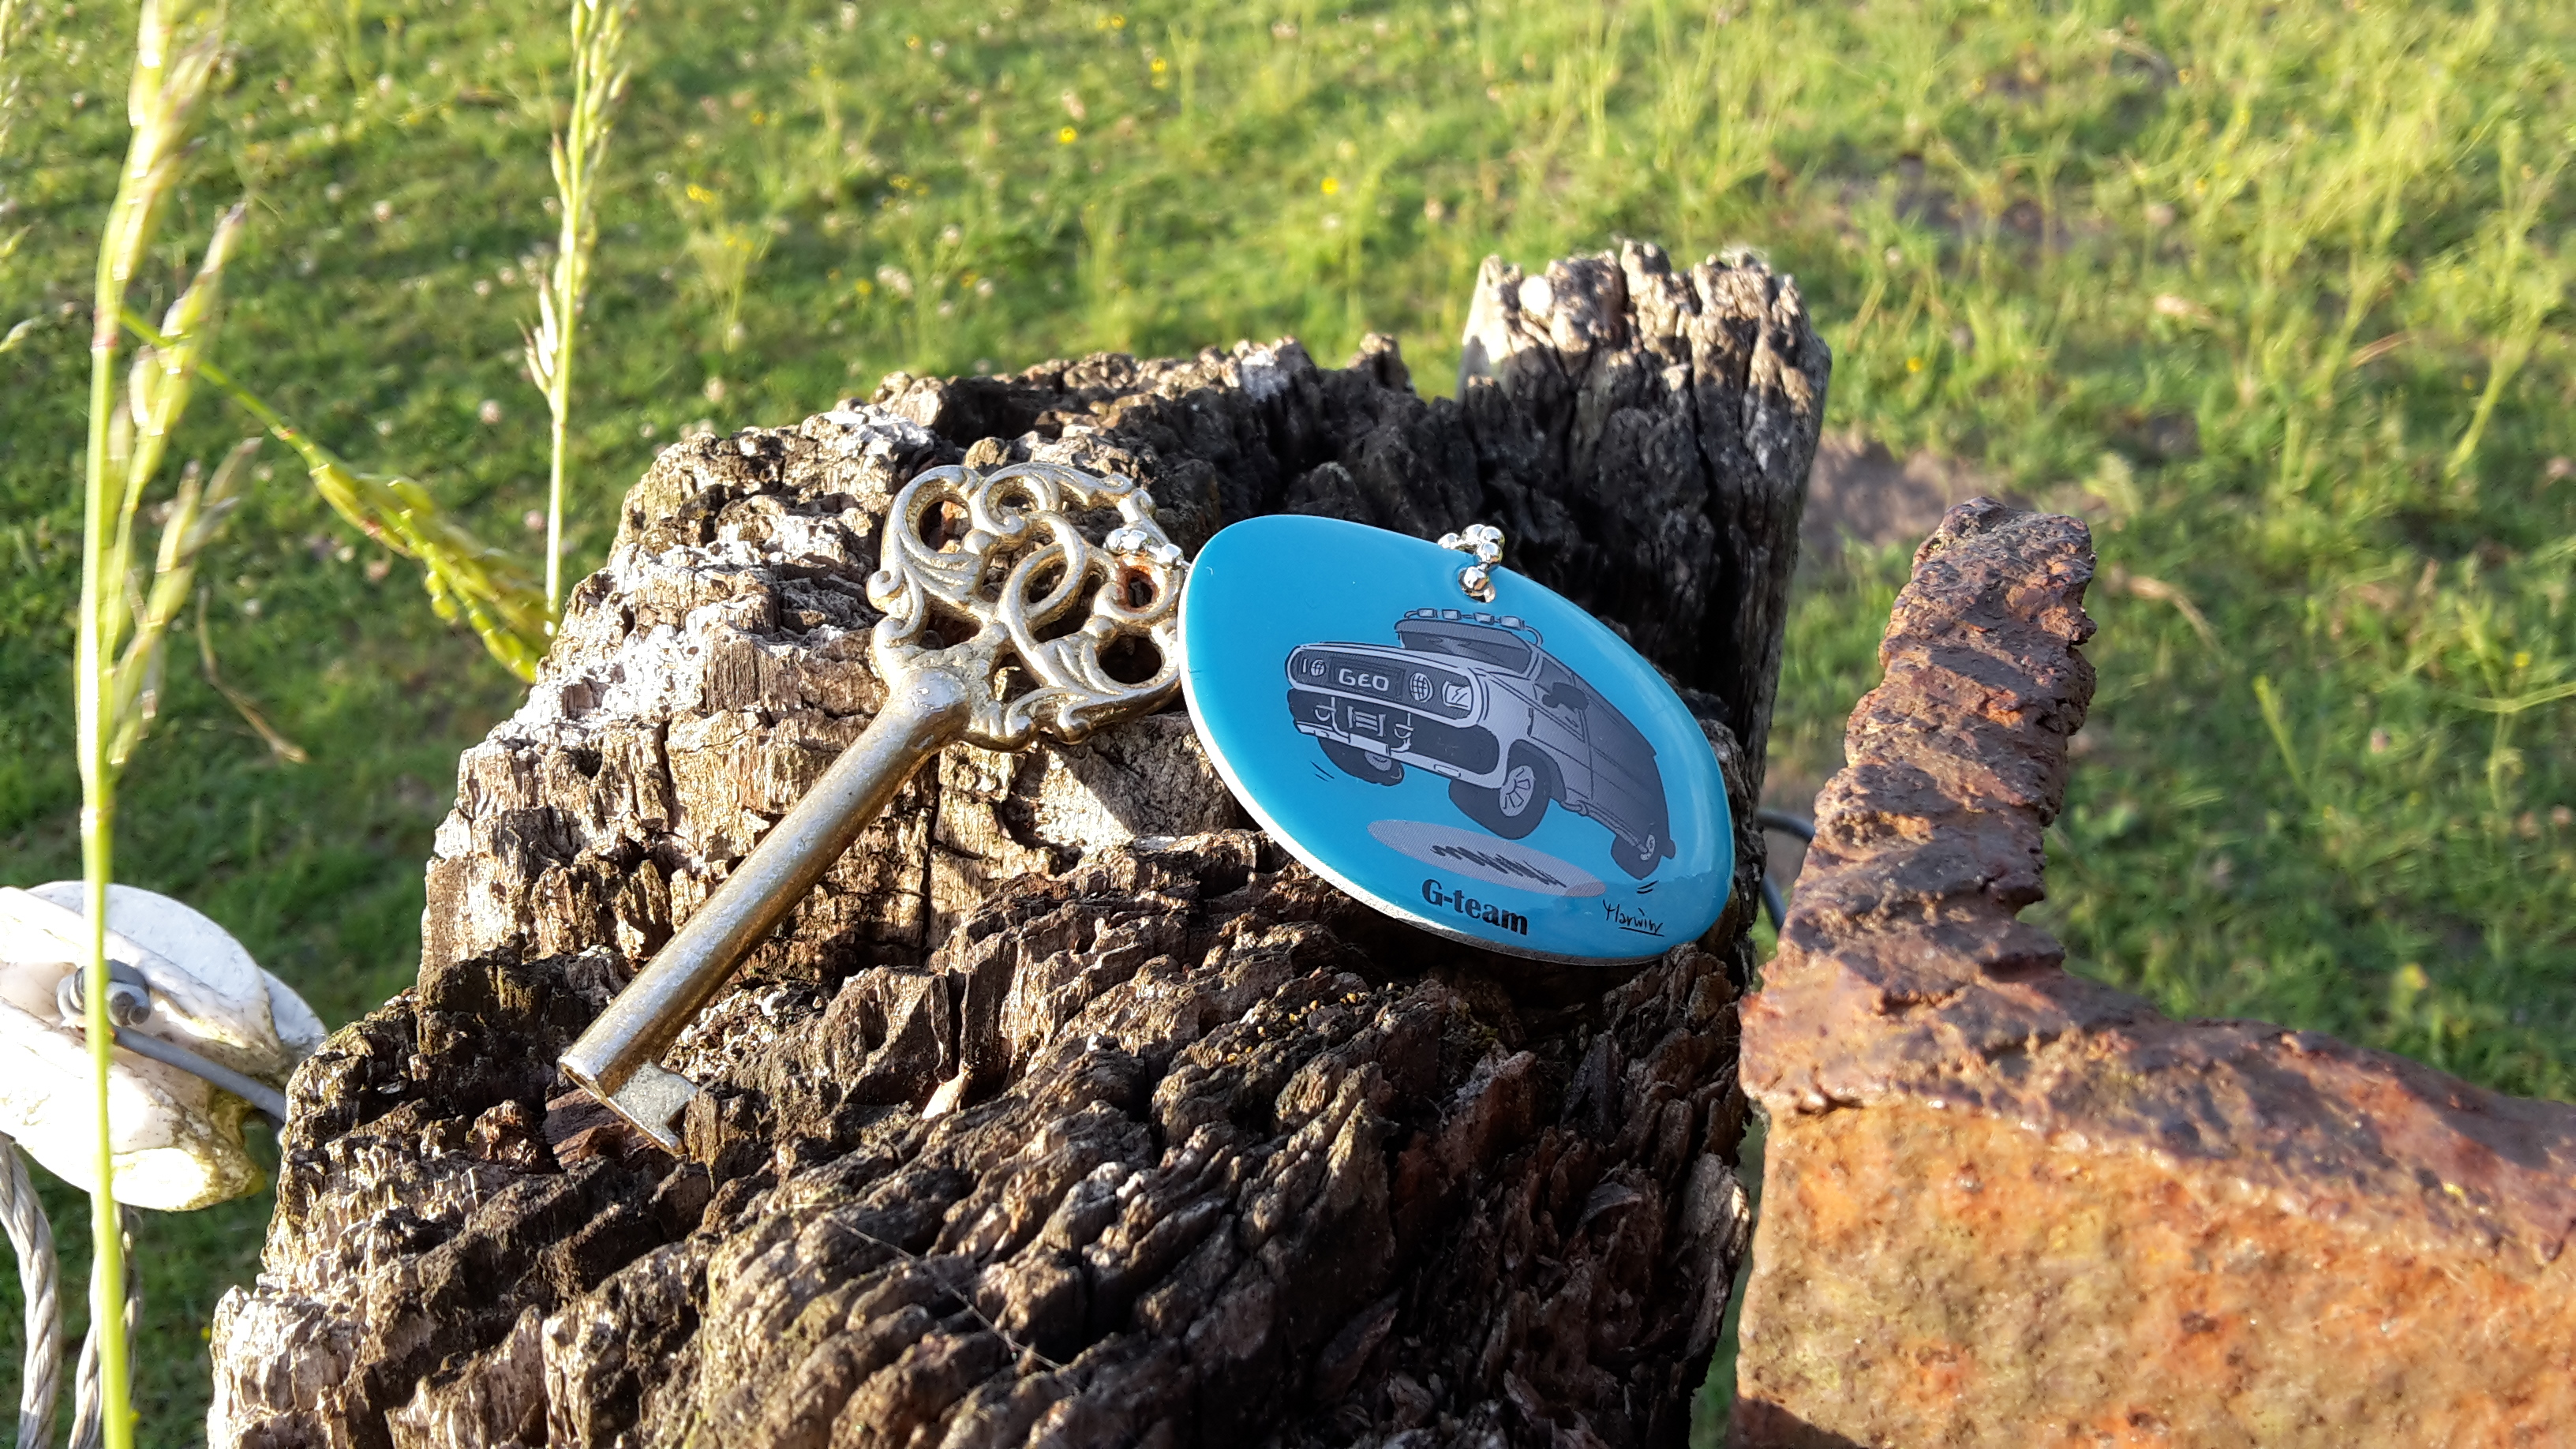 Trackable Geocaching